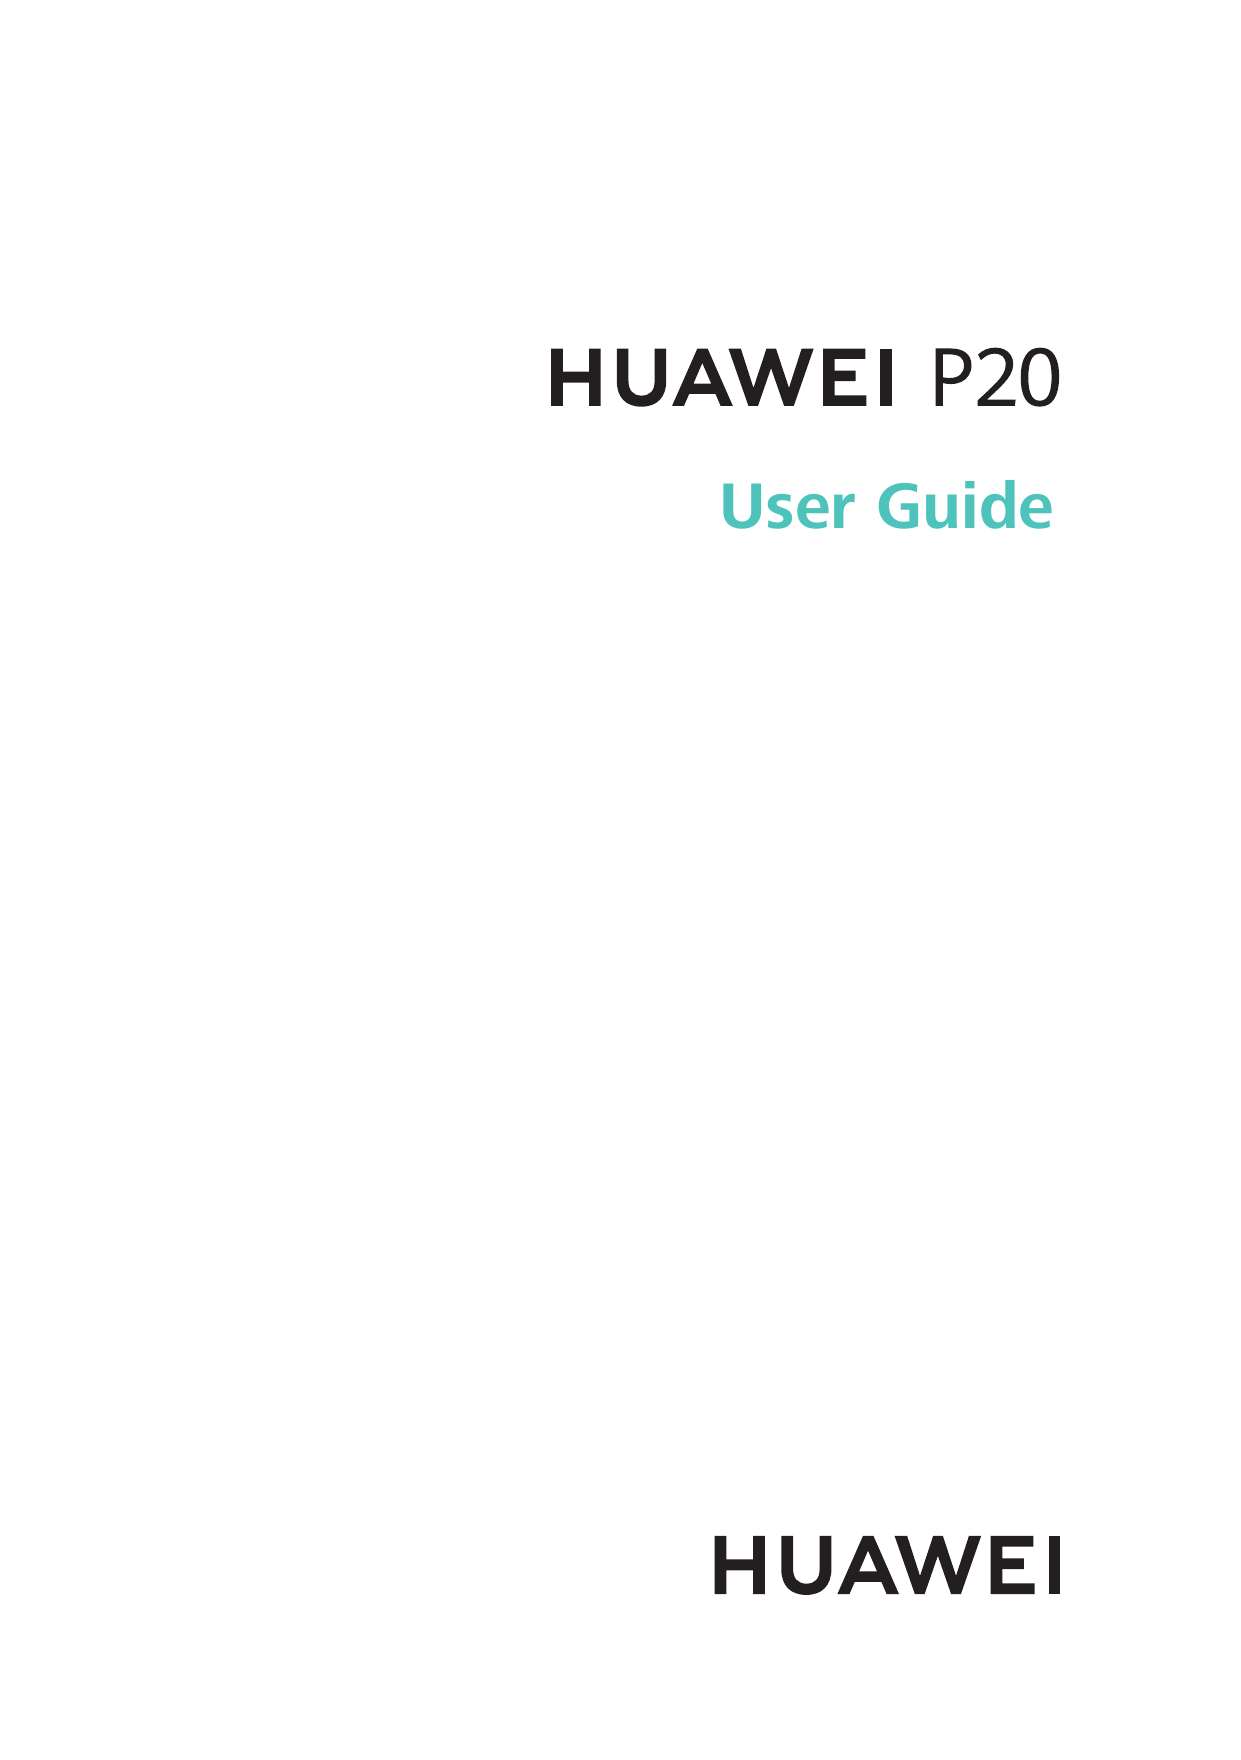 Manual - Huawei P20 - Android 8 1 - Device Guide